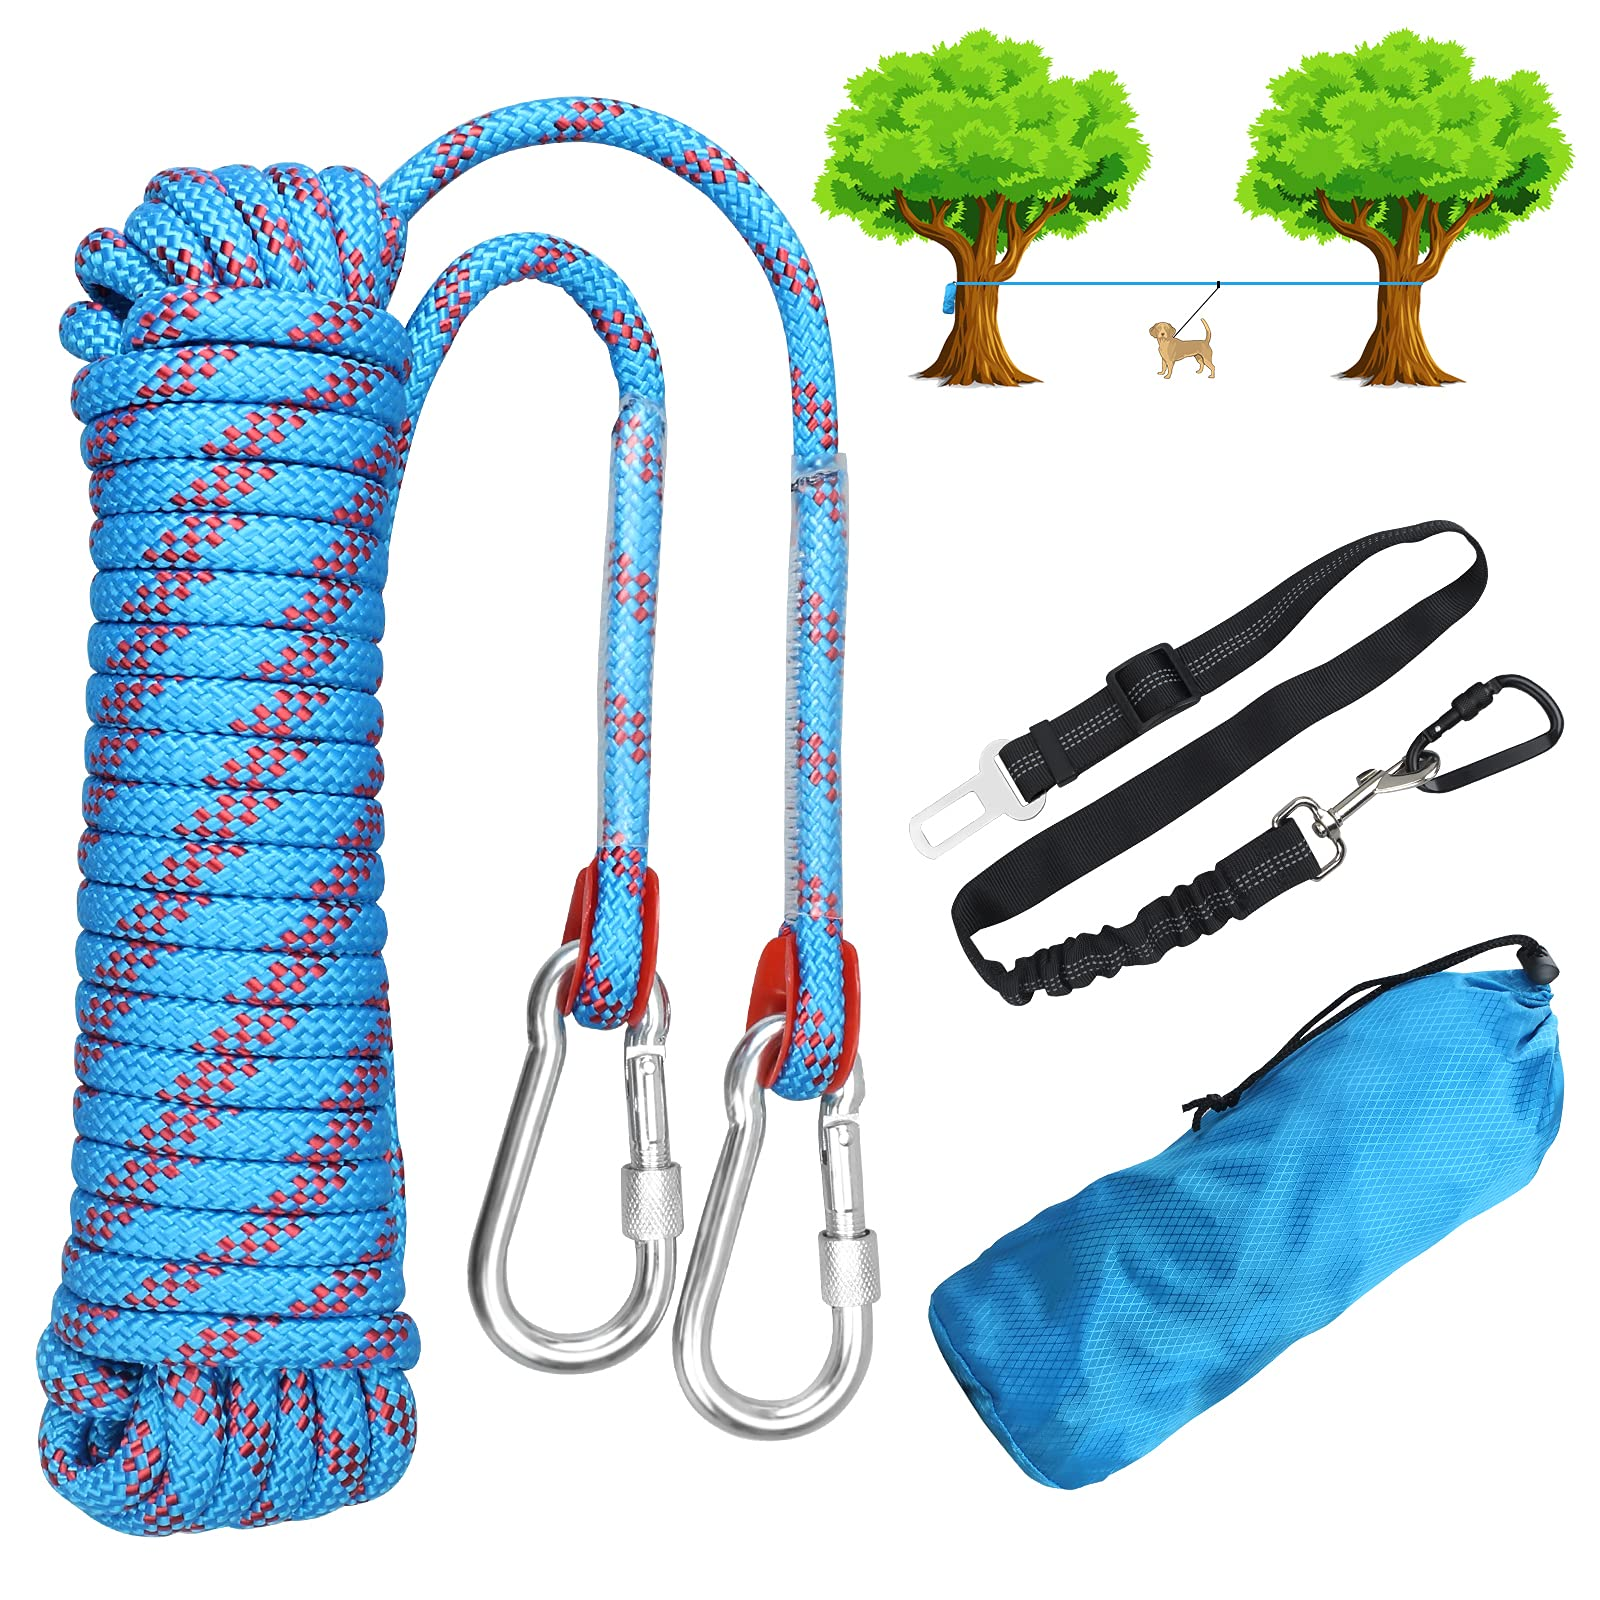 Dog Tie Out Cable for Outdoor Camping, Dog Trolley System Runner Cable for Yard, 32 ft Durable Heavy Tie Out Cable for Large Medium Small Dogs Up to 200lbs